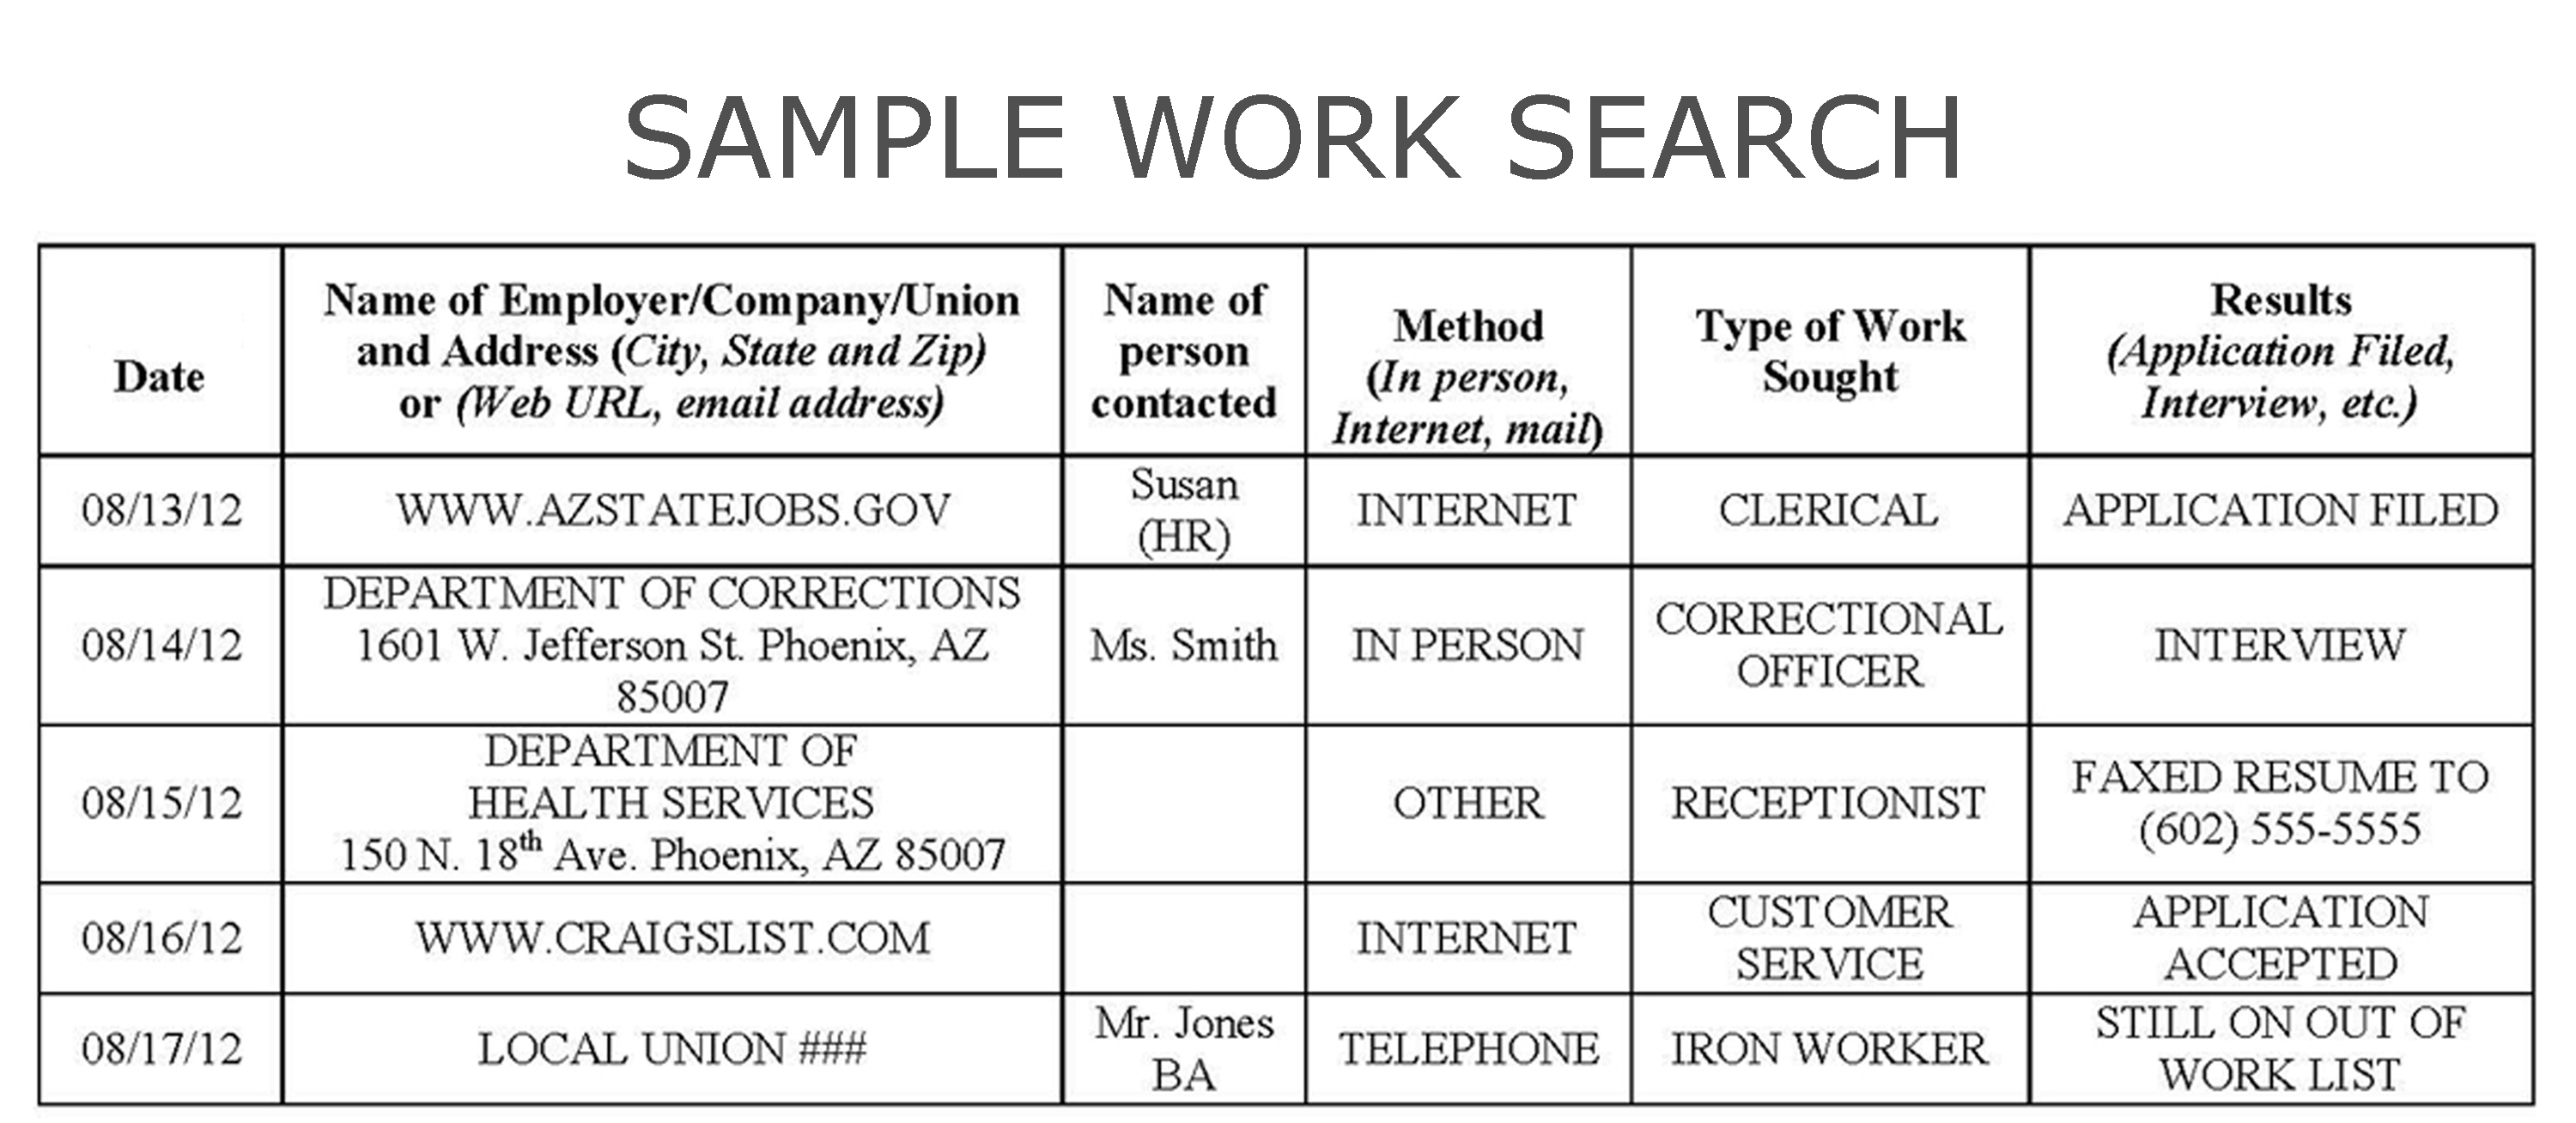 Sample Work Search  How To Write A Weekly Report Sample